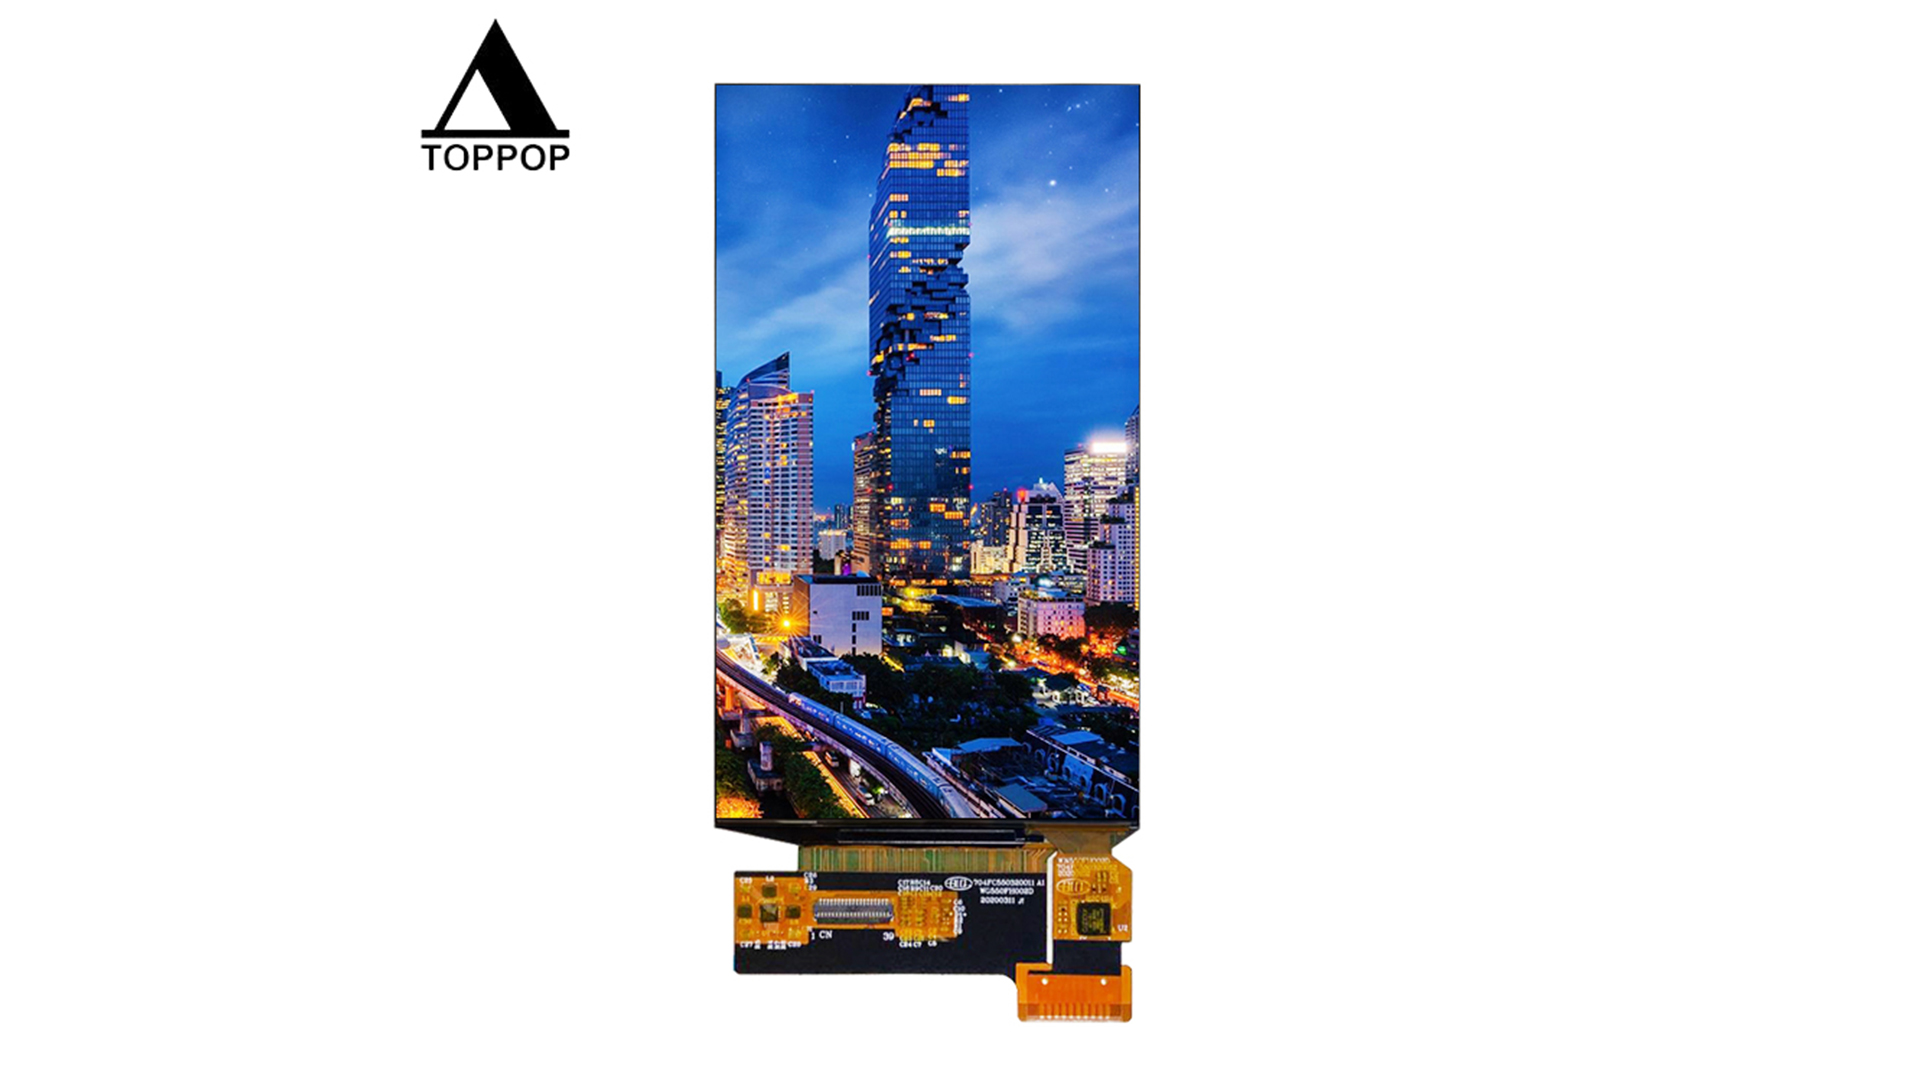 5.5 inch AMOLED Touch Screen IPS Full Viewing Angle 1080P FHD MIPI DSI 4 Lanes Interface 1080*1920 5.44 inch OLED Display LCD Module with Capacitive Touch Panel 39 Pin Connector OEM ODM toppoplcd